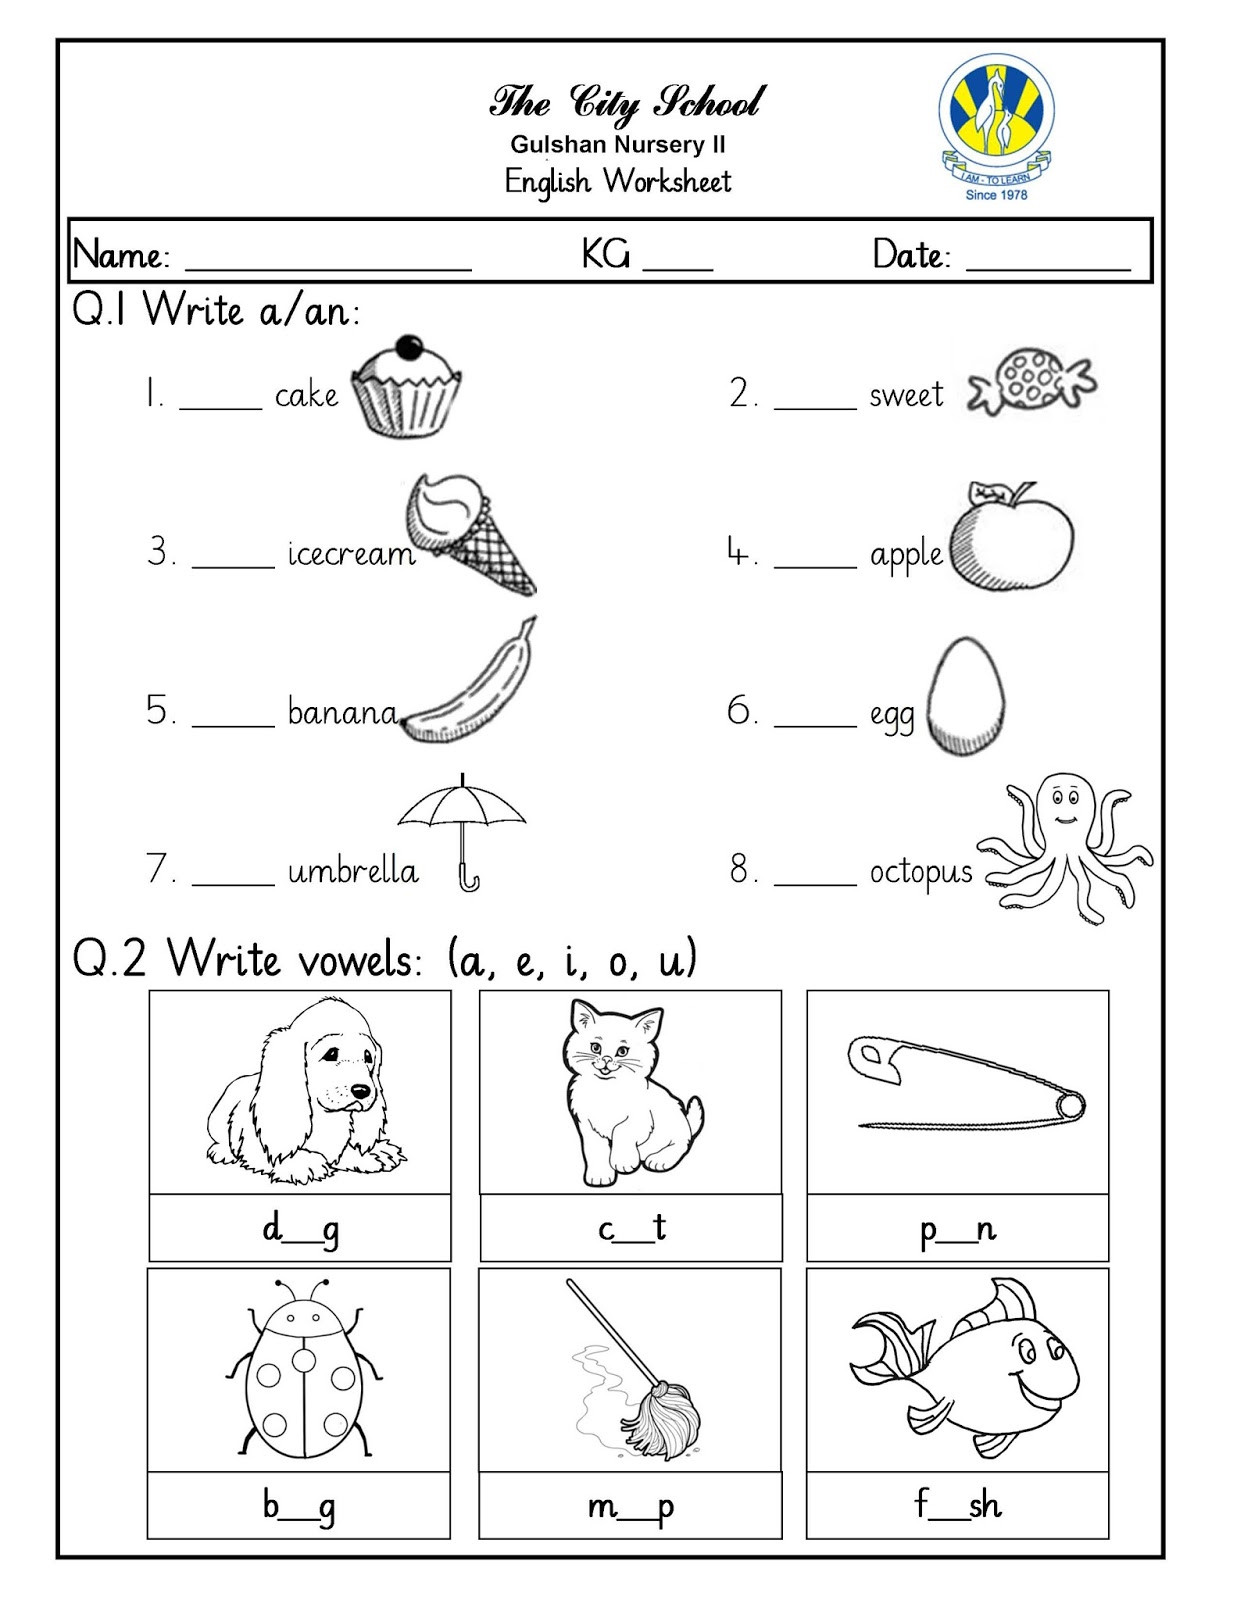 Second Grade Sight Words Worksheets Worksheet Classroom Worksheets Printable Kidzone English